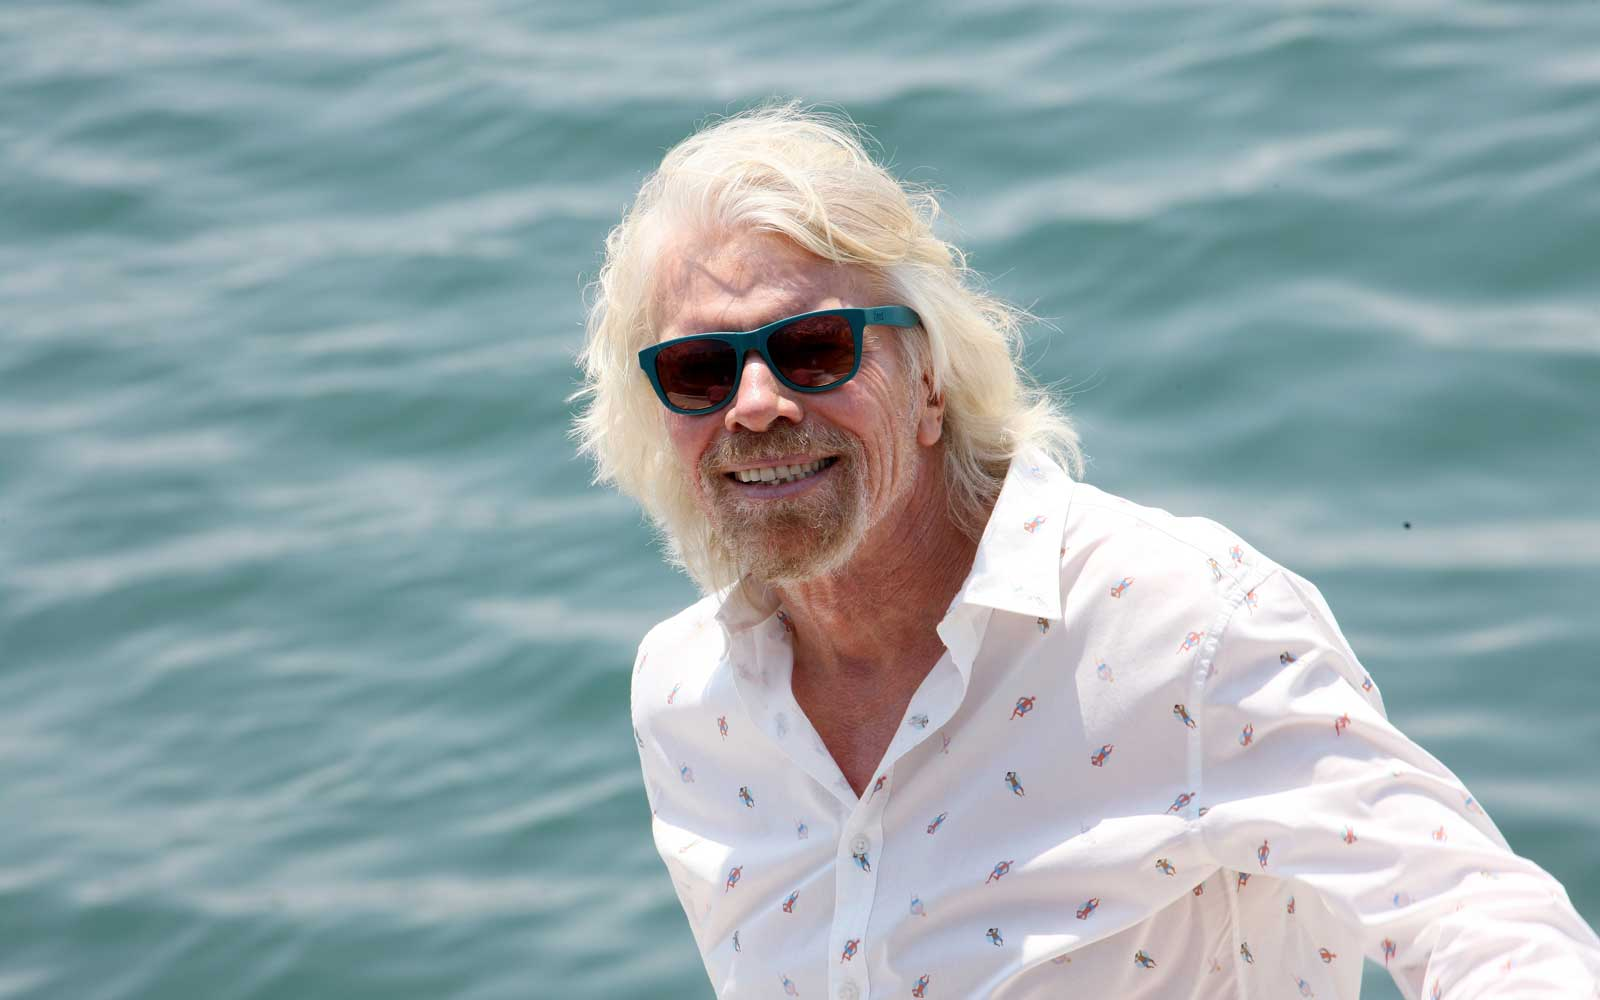 Richard Branson Reveals Details About the First Virgin Cruise Ship